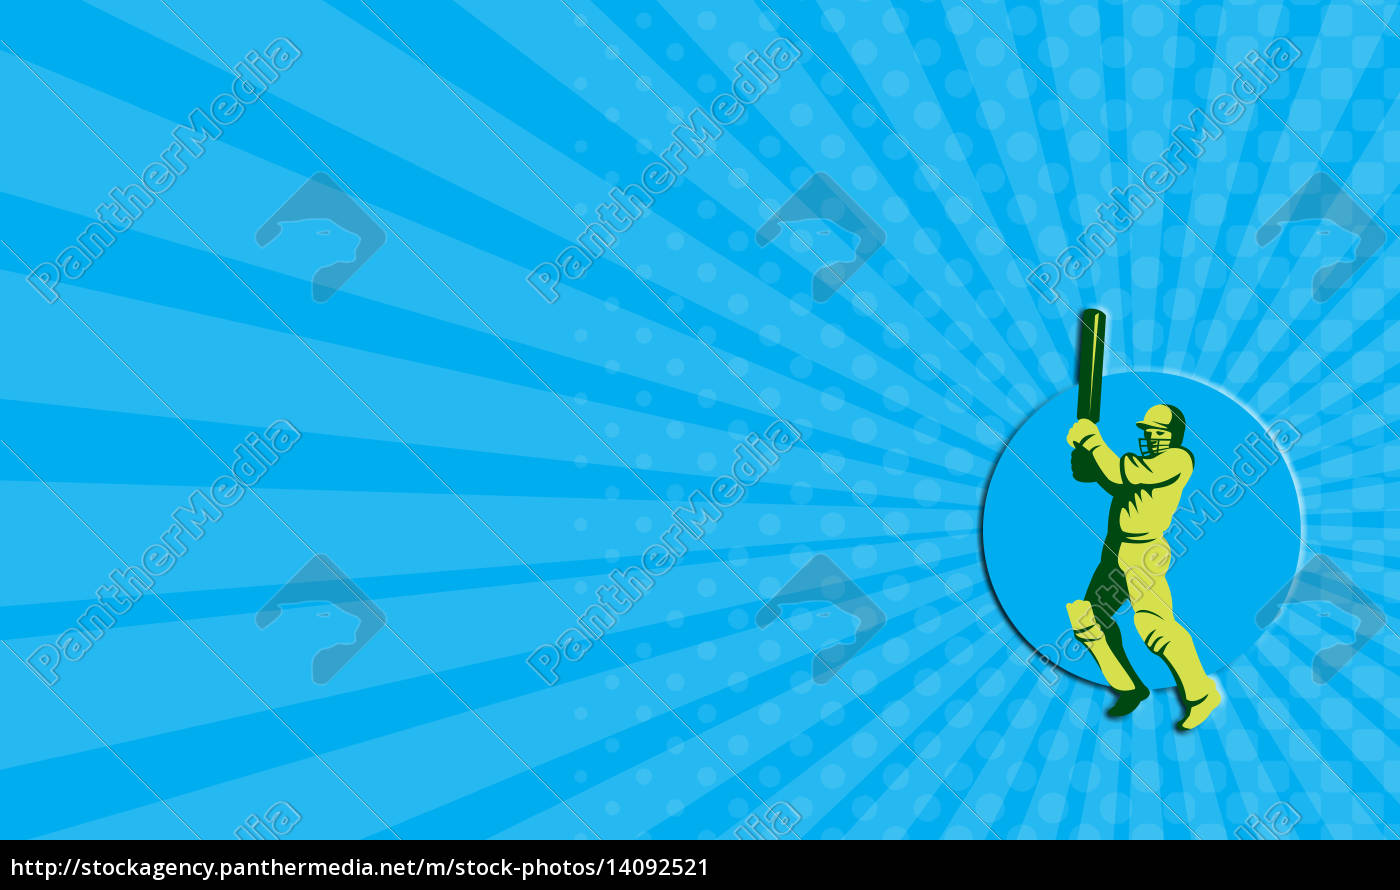 business, card, cricket, player, batsman, batting - 14092521